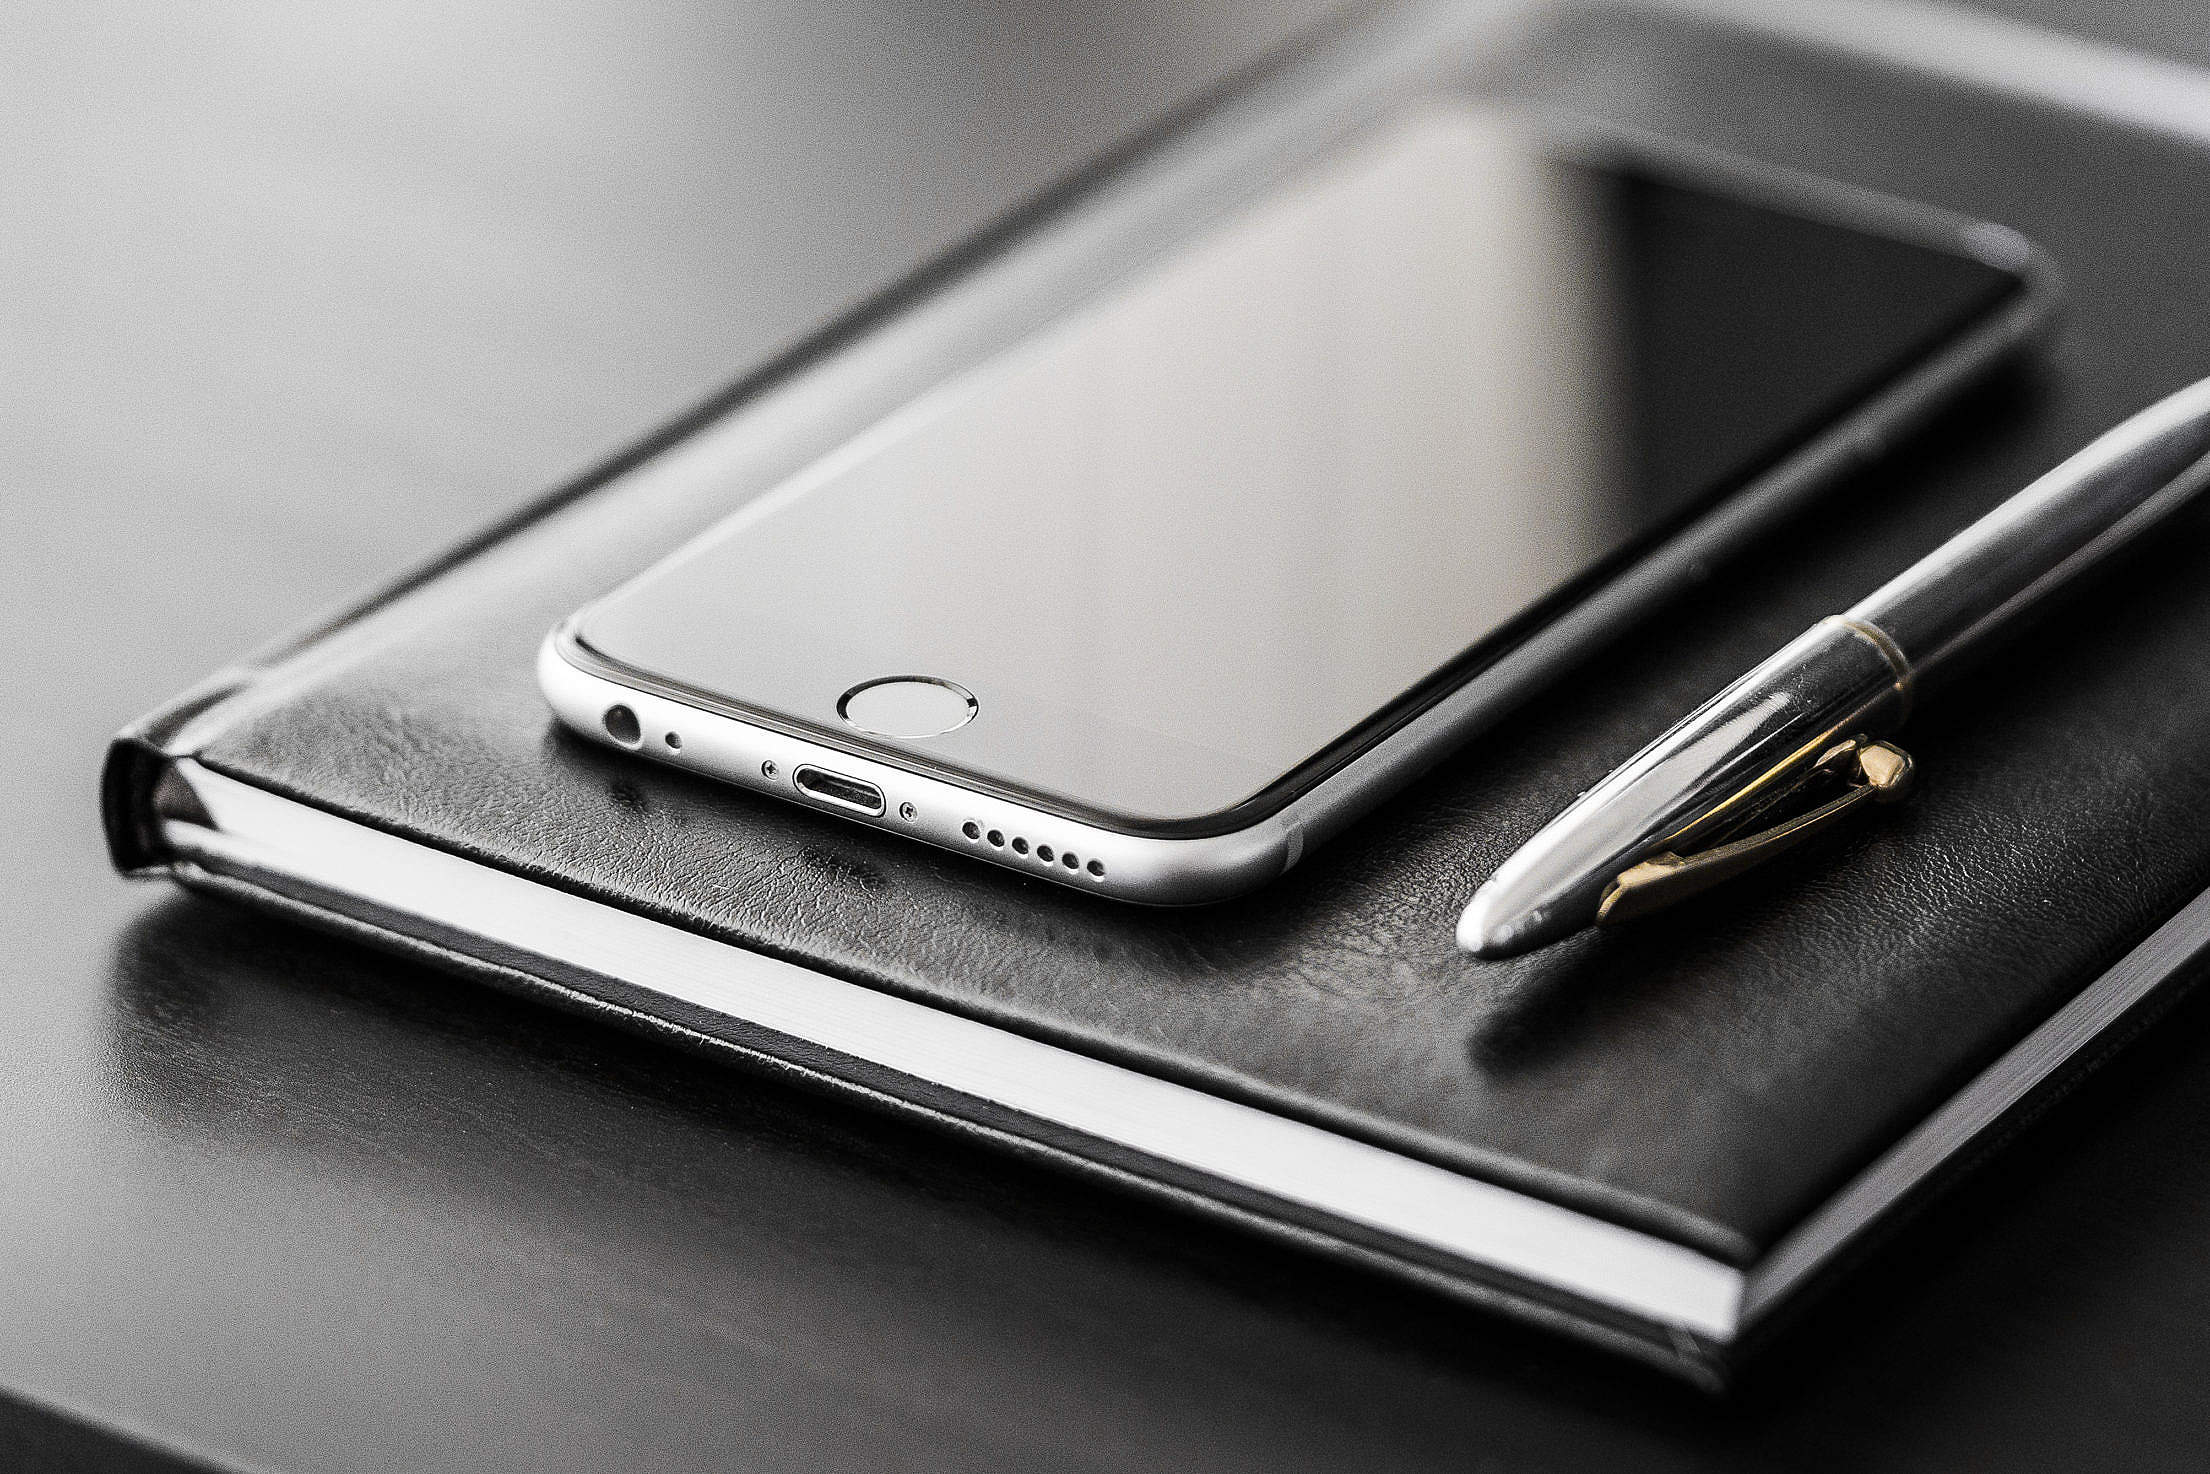 Business Gear: Smartphone, Silver Pen and Diary Free Stock Photo